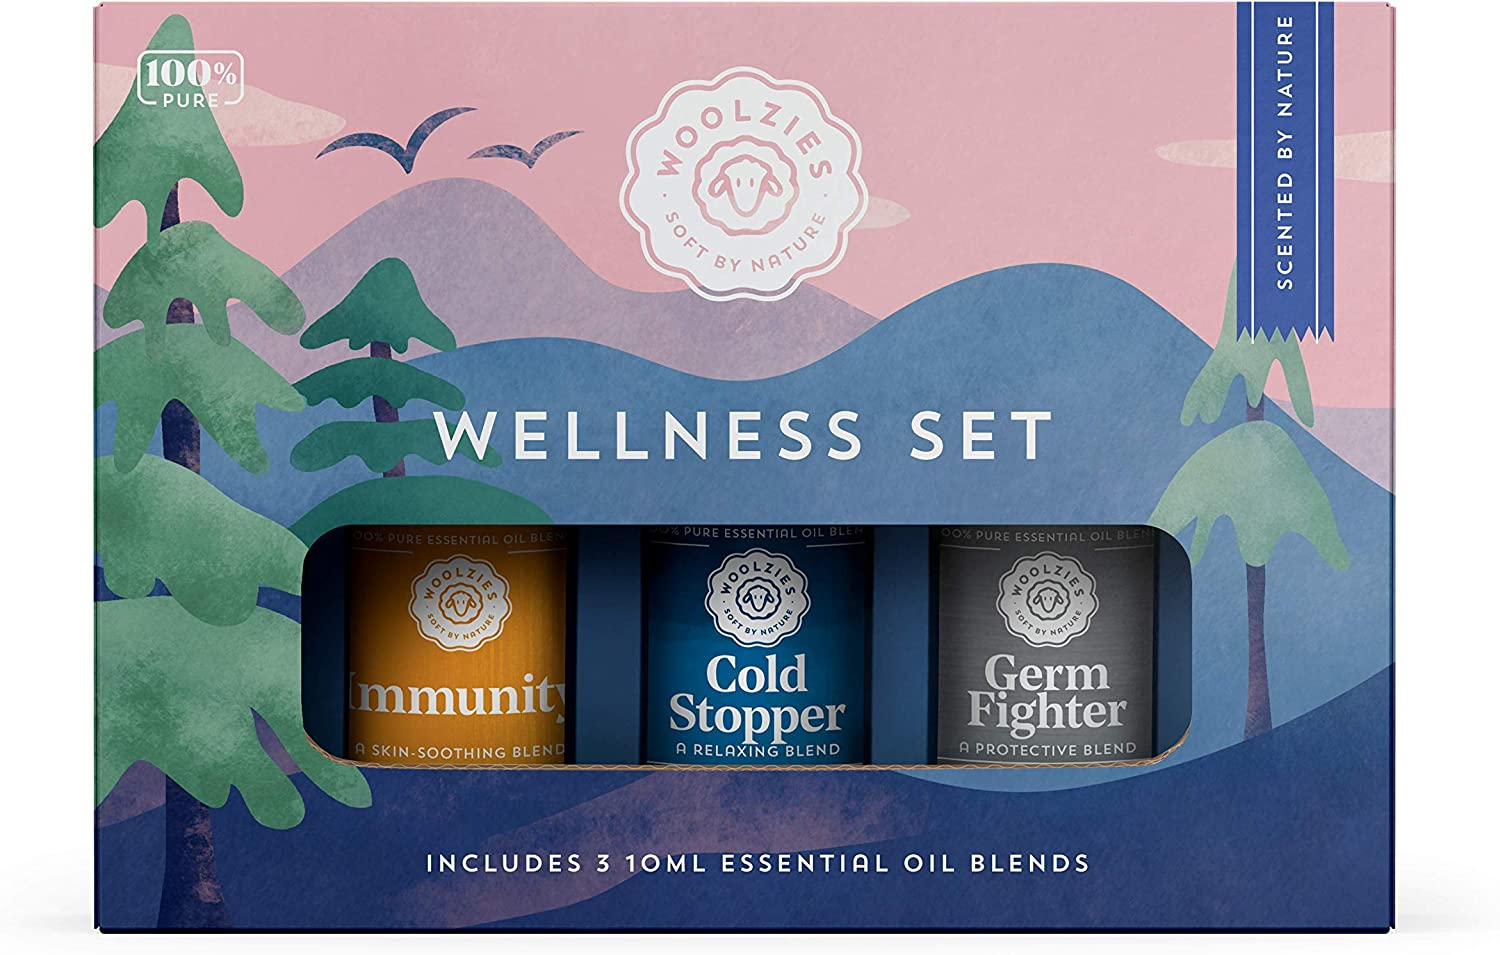 Woolzies 100% Pure Wellness Essential Oil Blend Set   Good Health Germ Fighter Cold Stopper   Natural Cold Pressed Highest Quality Undiluted Therapeutic Grade Oils  for Diffusion Internal or Topical